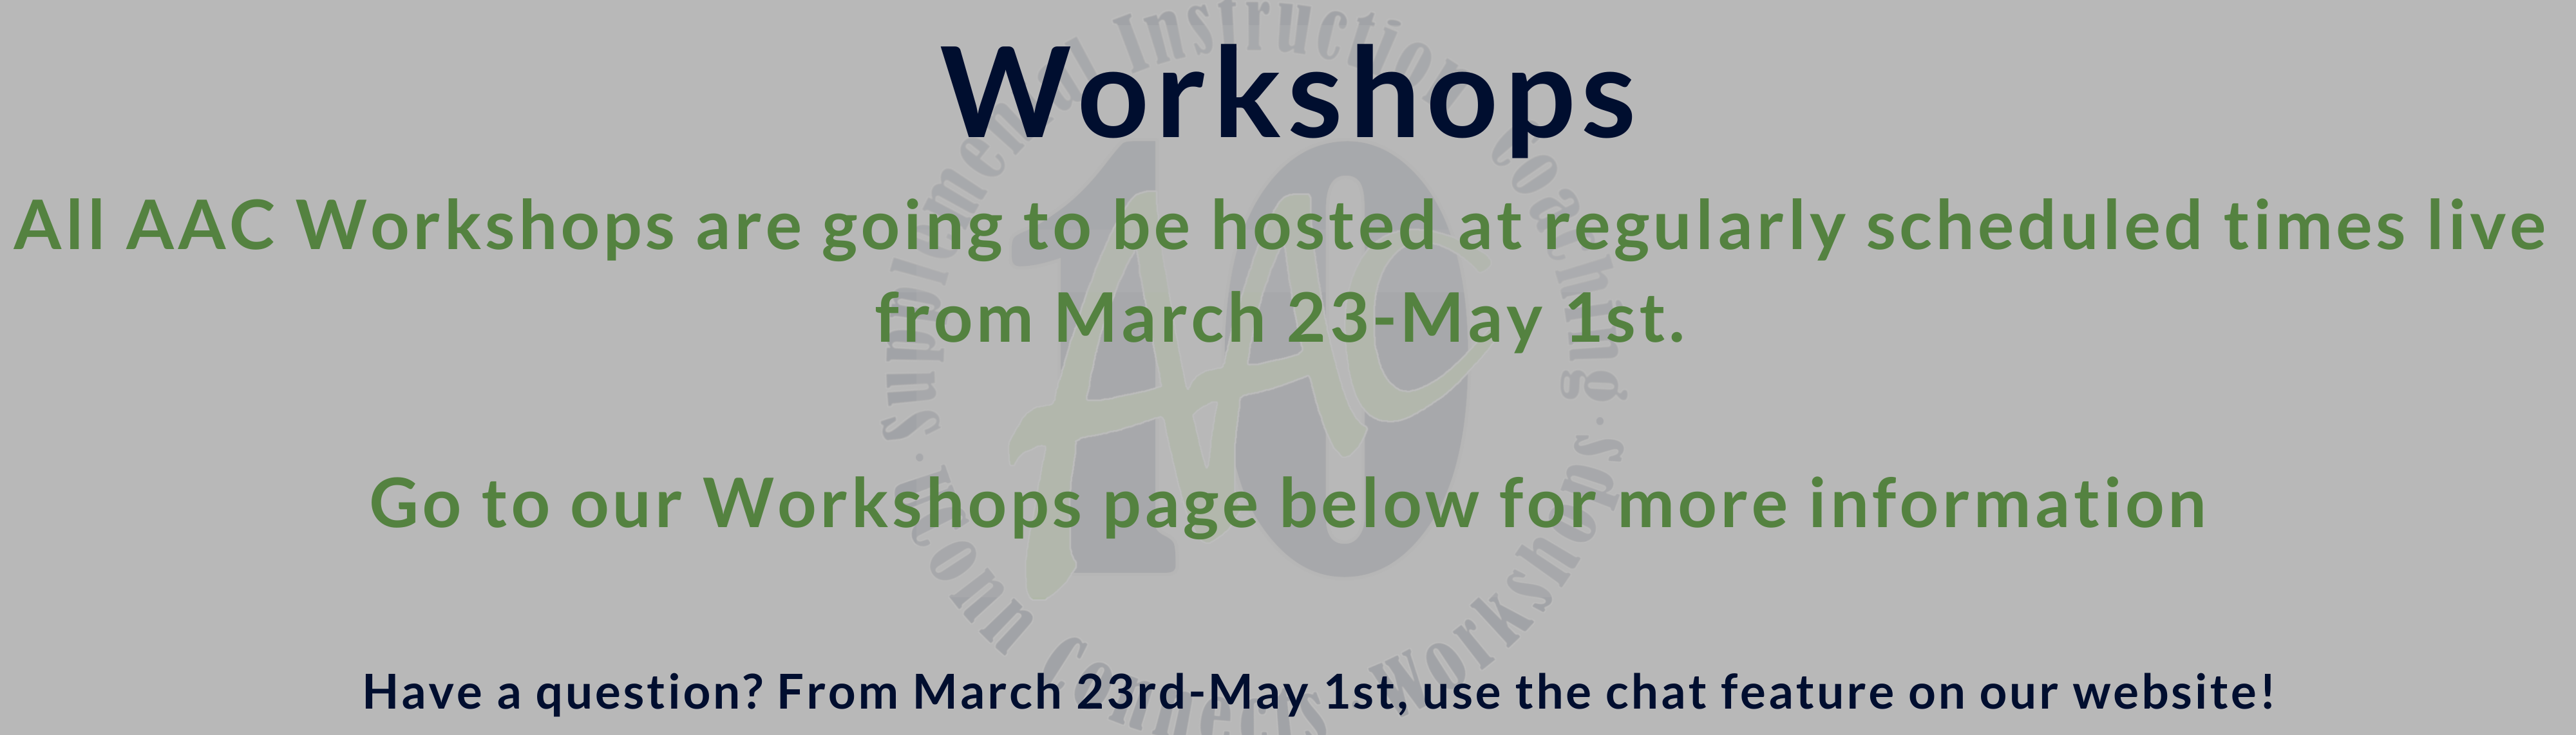 workshops are virtual!